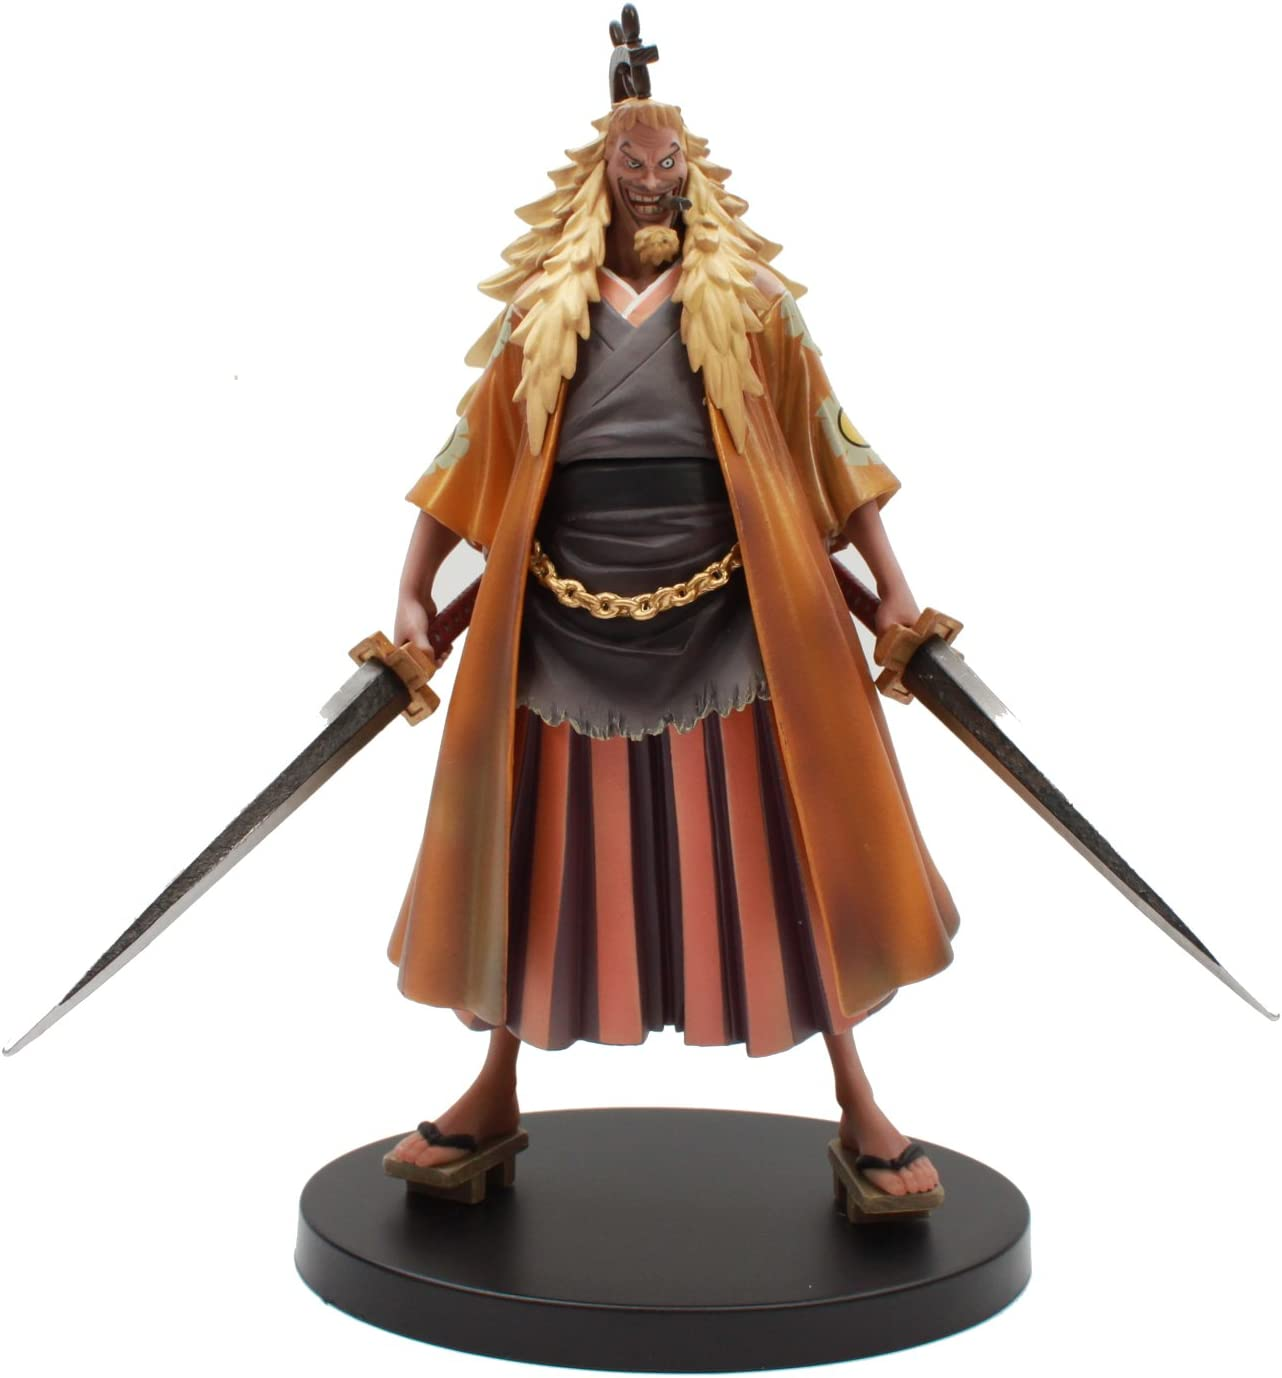 Shiki Banpresto DX Figure The Grandline Men Vol 0-II ONE PIECE